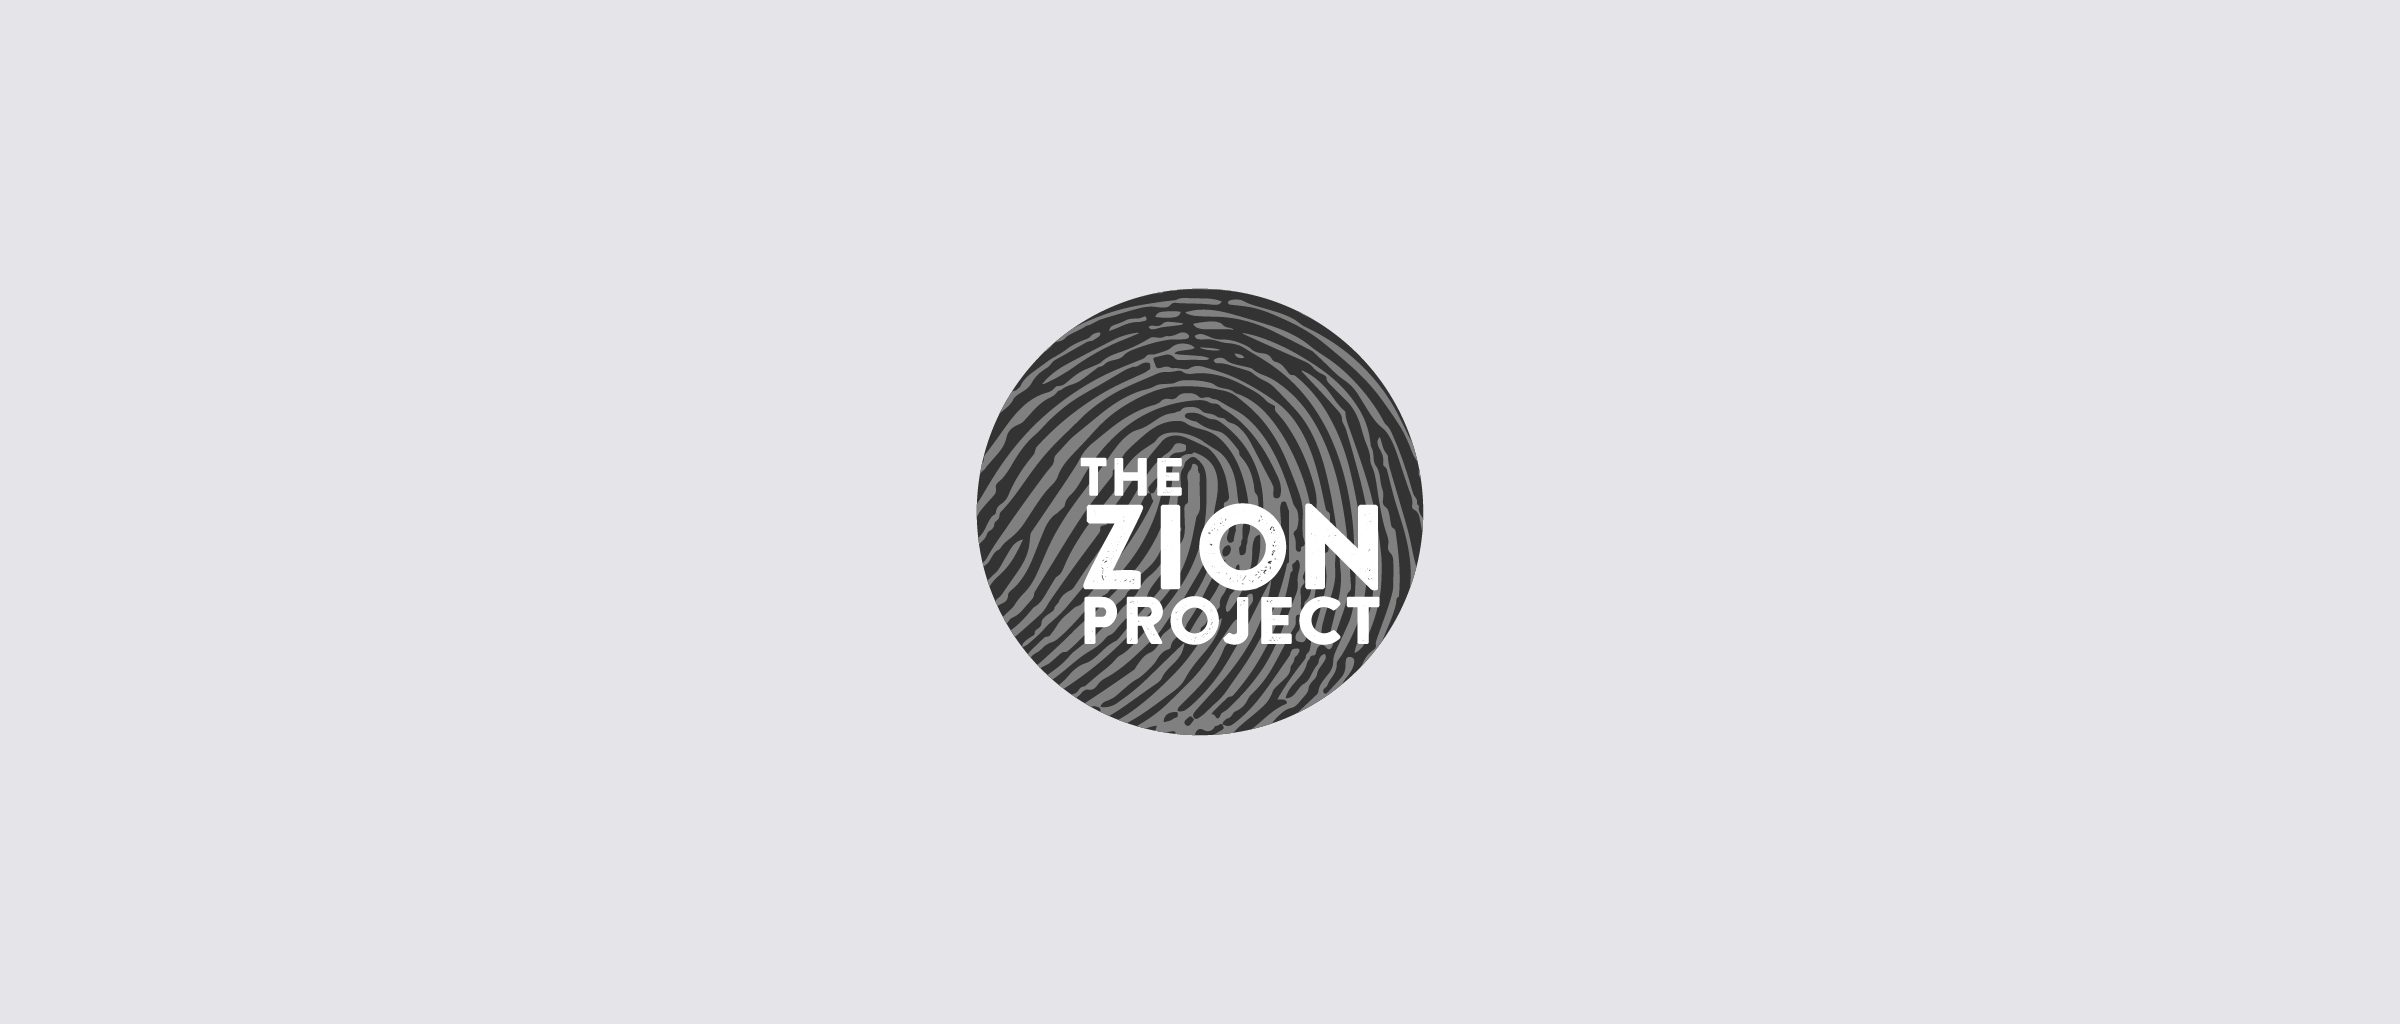 logo_the-zion-project_bw.png